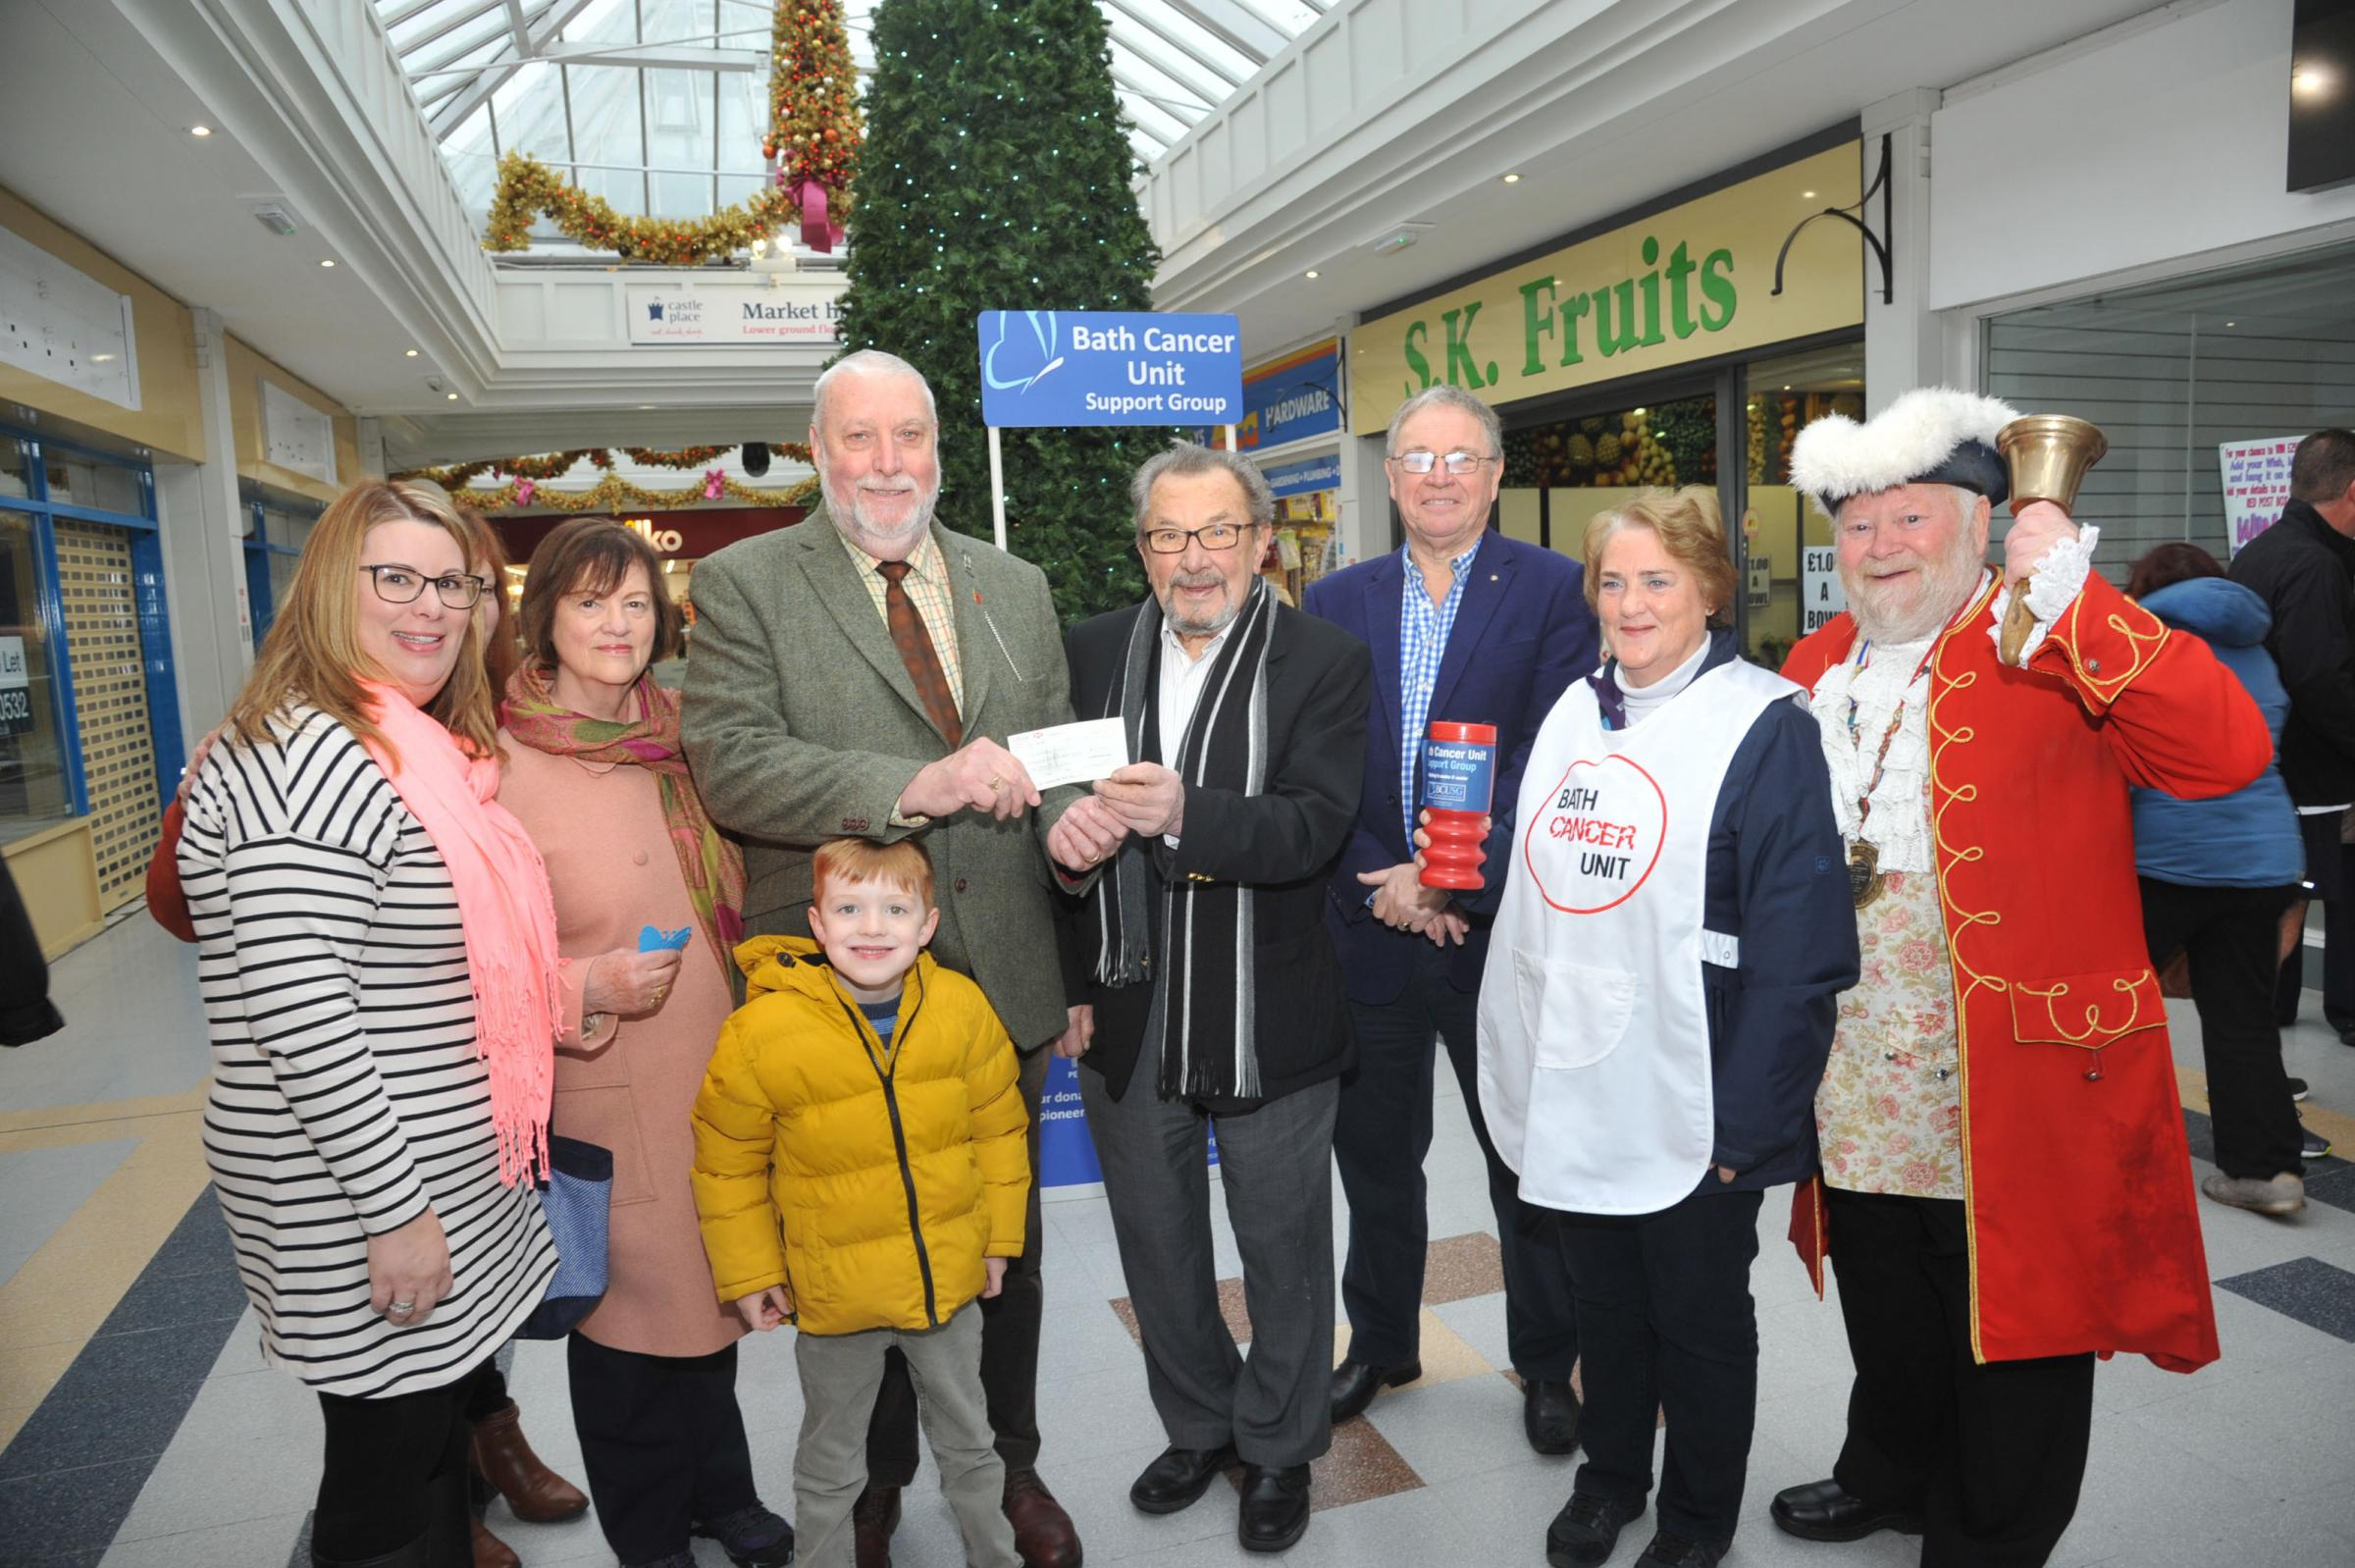 Chairman of cancer support group Trowbridge , Tino Polledri receives the Cheque from Nigel Hunt and family. Photo Trevor Porter 60061 1..